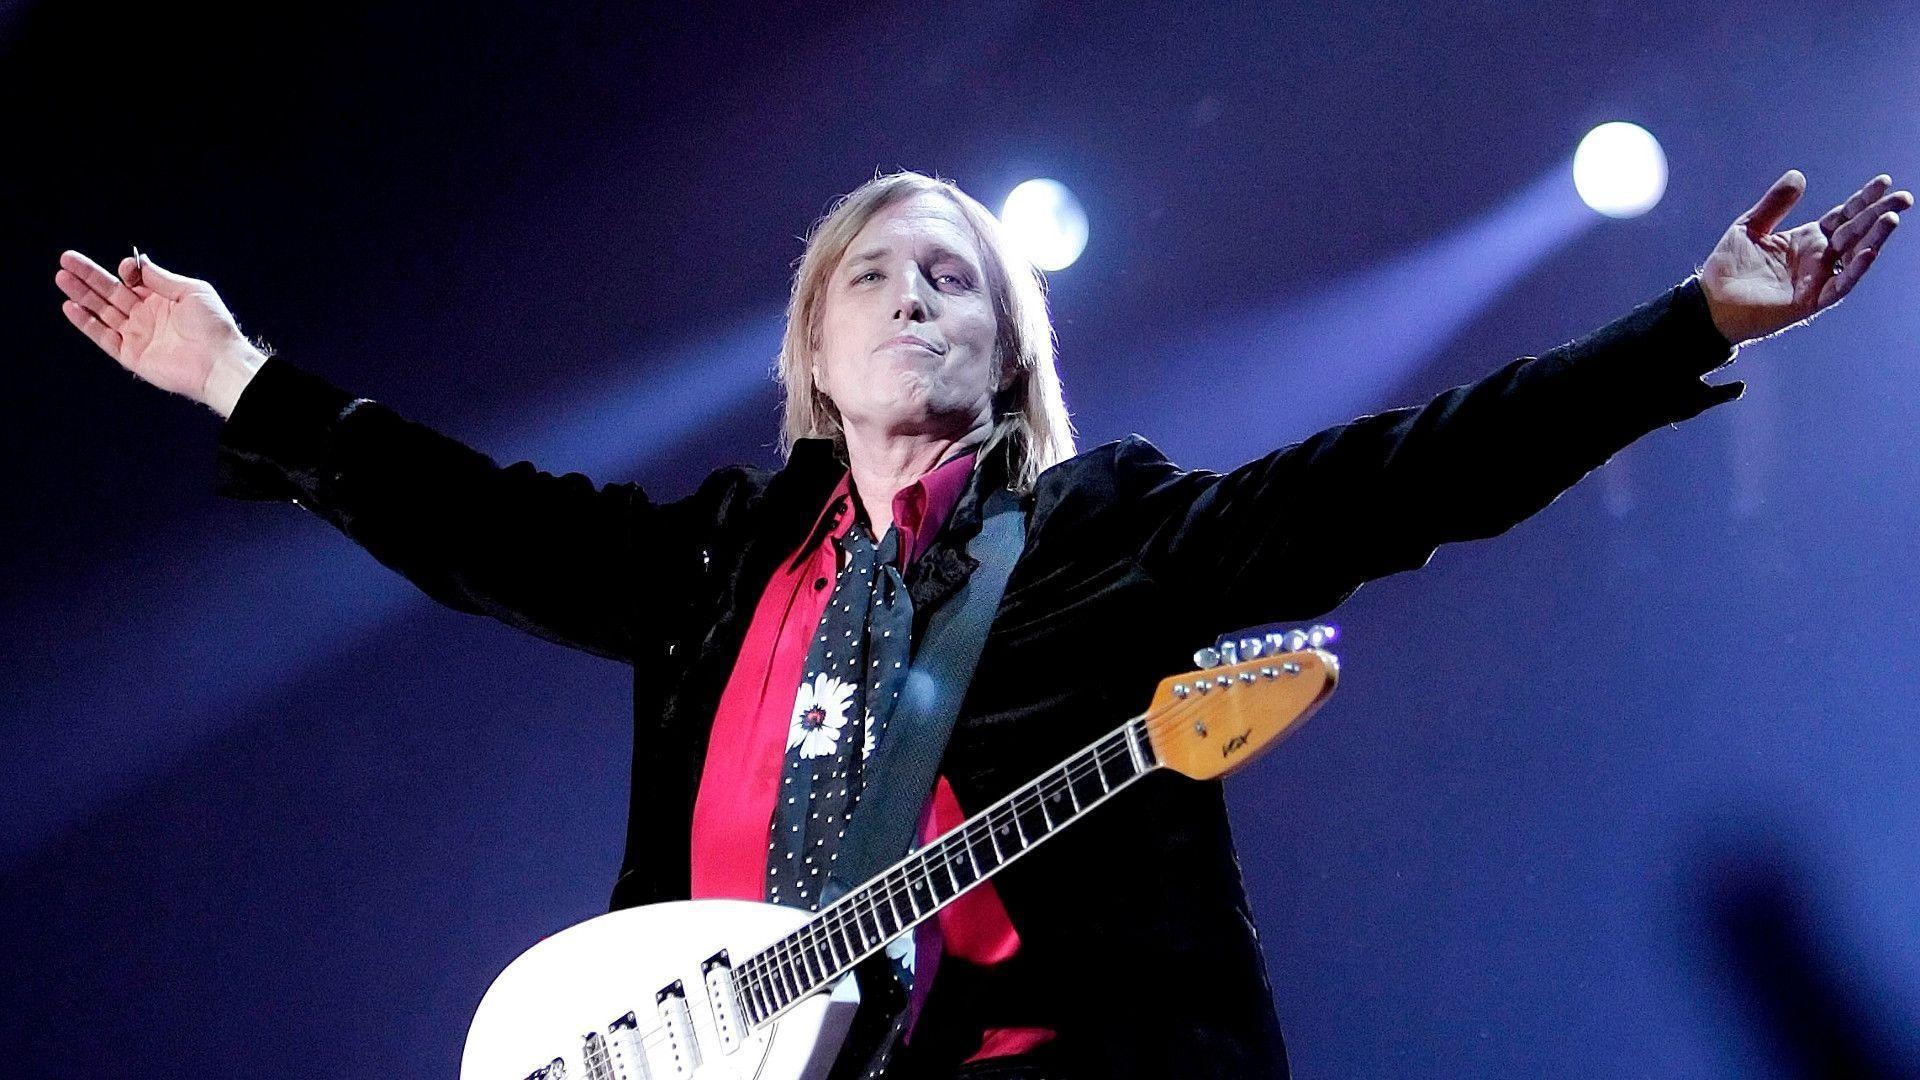 Tom Petty | Best Music Wallpapers